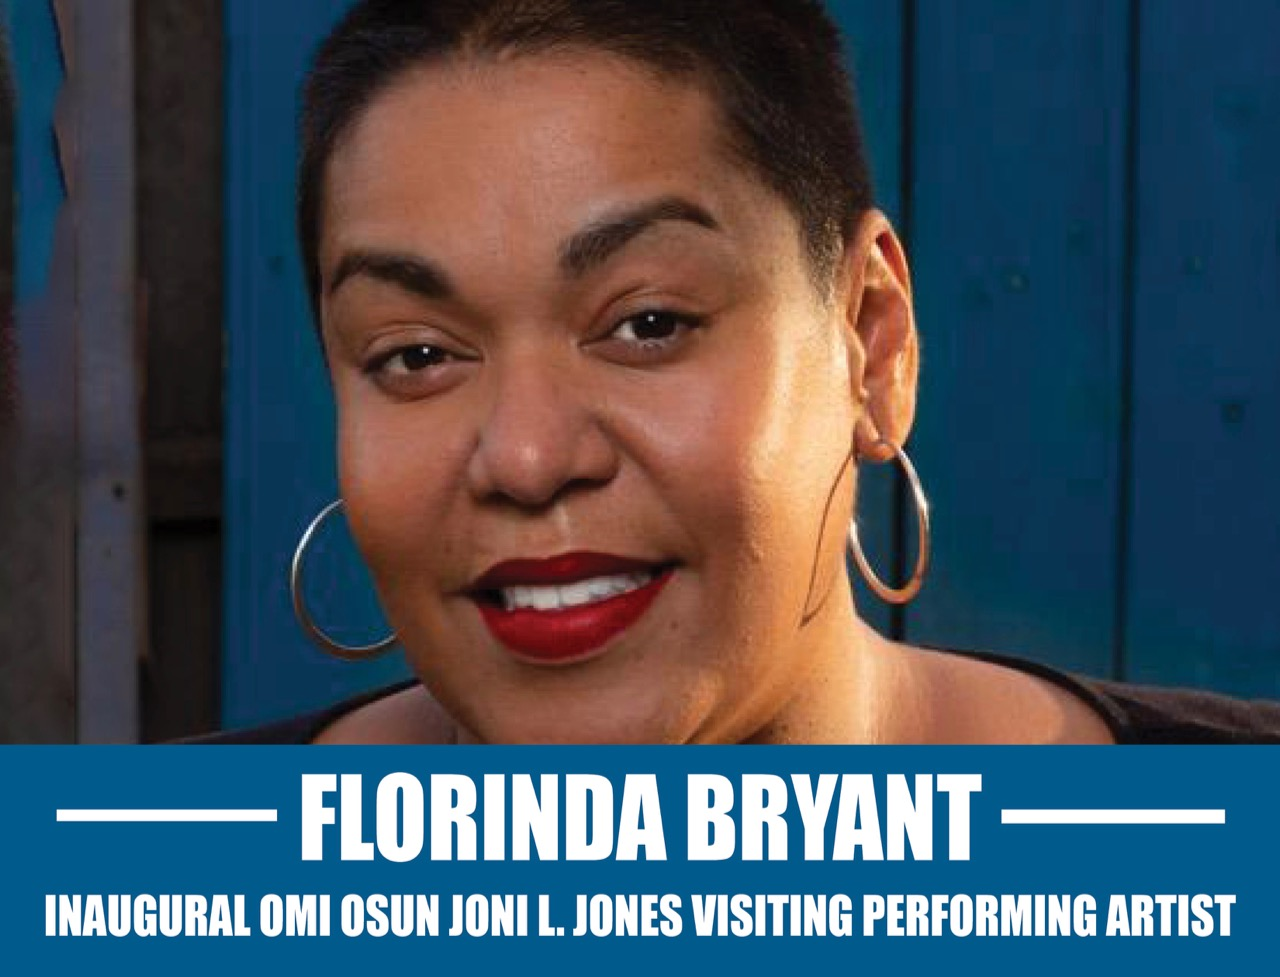 Performance of Florinda Bryant's critically acclaimed one-woman show BLACK DO CRACK